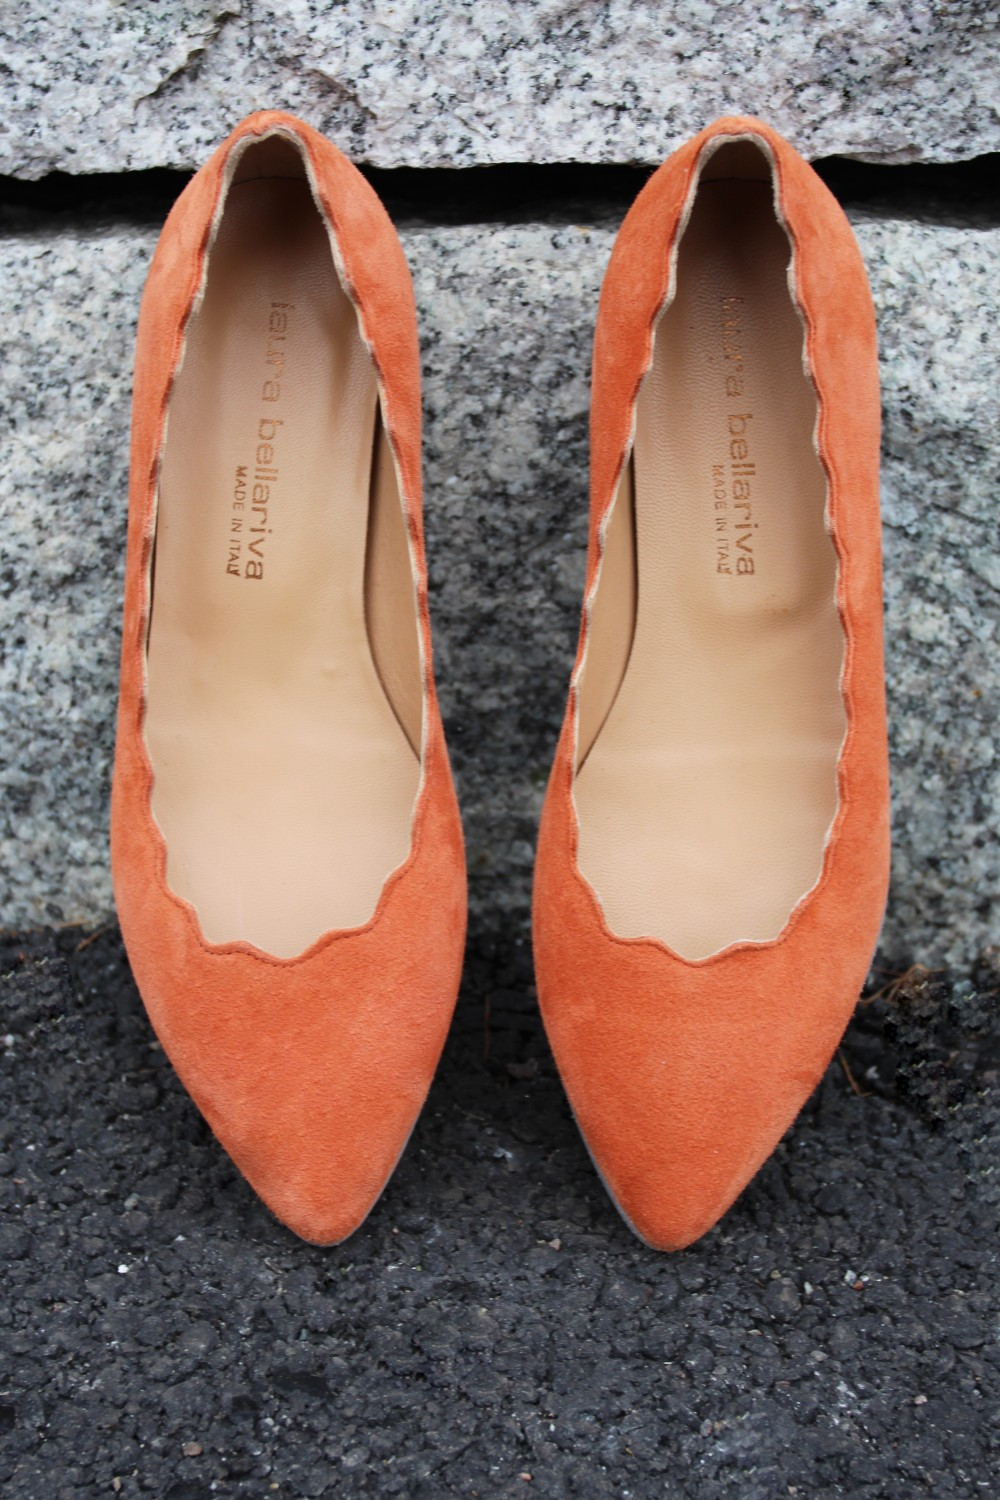 Laura Bellariva Striss Orange